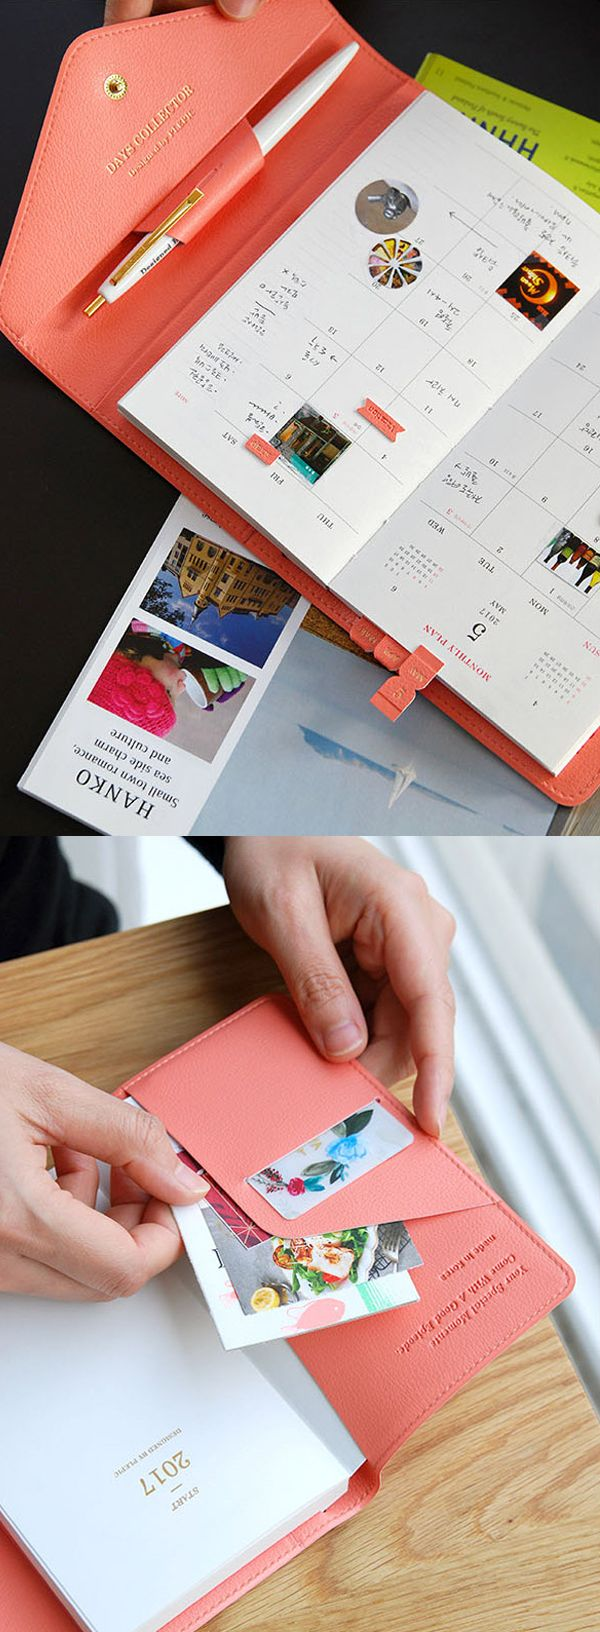 Explore endless possibilities with this gorgeous 2017 Days Collector Diary Wallet! This planner & wallet duo is a travel must-have. It features a beautifully designed dated planner so you can plan all your vacations and adventures throughout the year. The planner is held in a luxurious wallet cover with 3 card slots, 2 pockets, and a pen holder. It's perfect for carrying your boarding pass, tickets, cash, and more. Check out this cute & functional travel accessory!